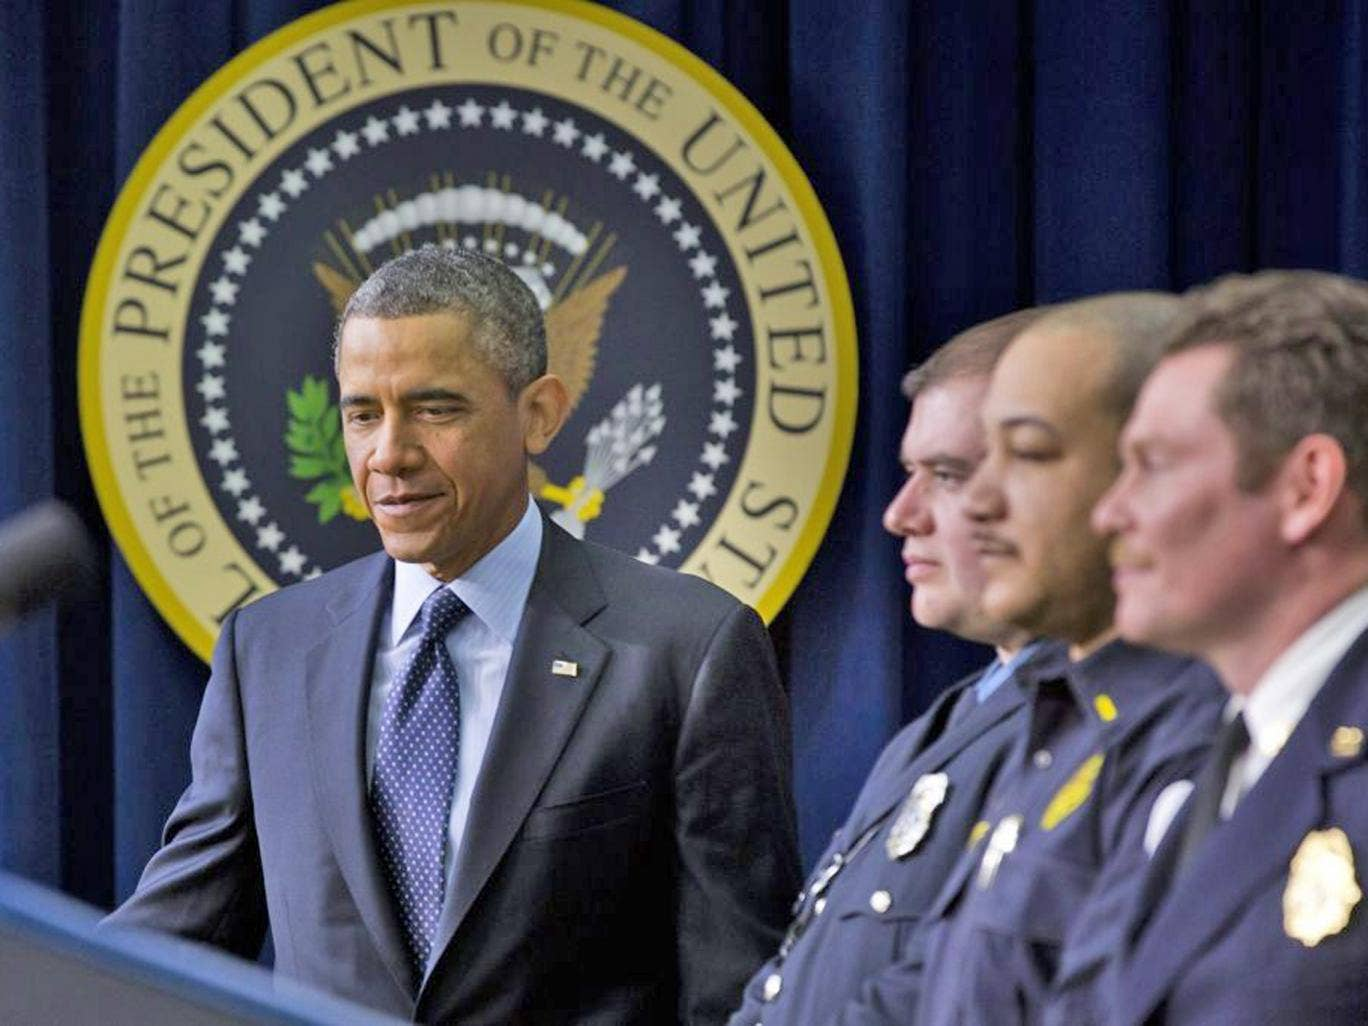 Barack Obama with emergency responders urges Congressional action to stop spending cuts